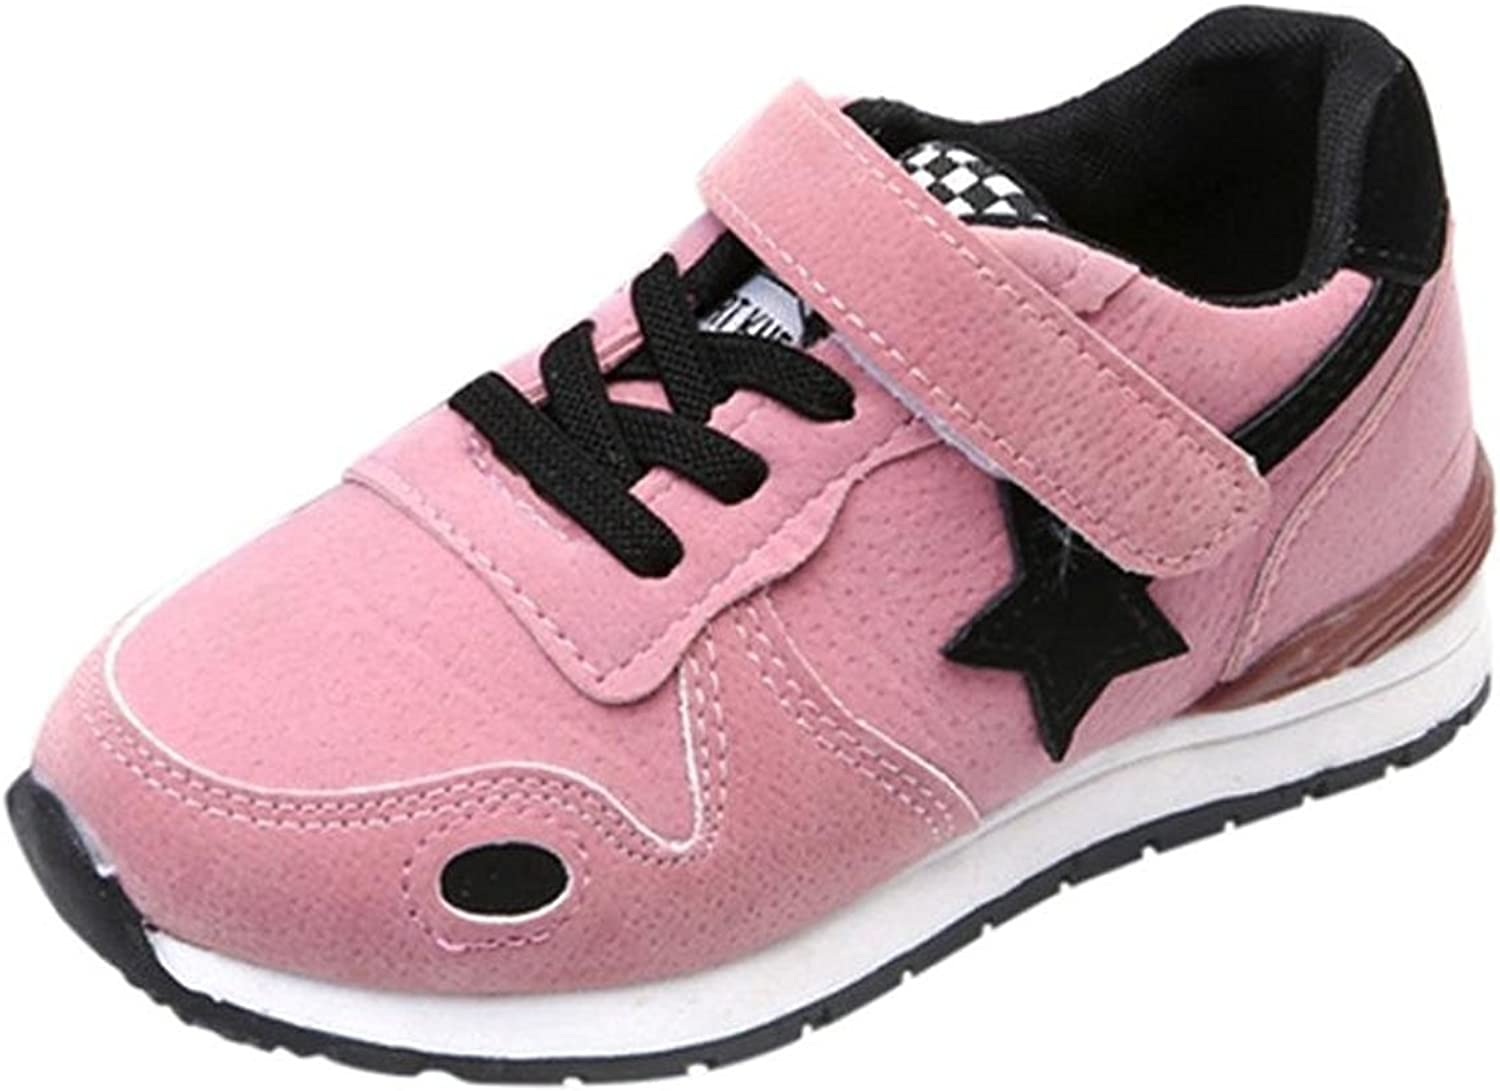 For 1-10 Years Old Kids Sport Running Shoes,Muium Infant Baby Boy Girls Star Mesh Sneakers Boots